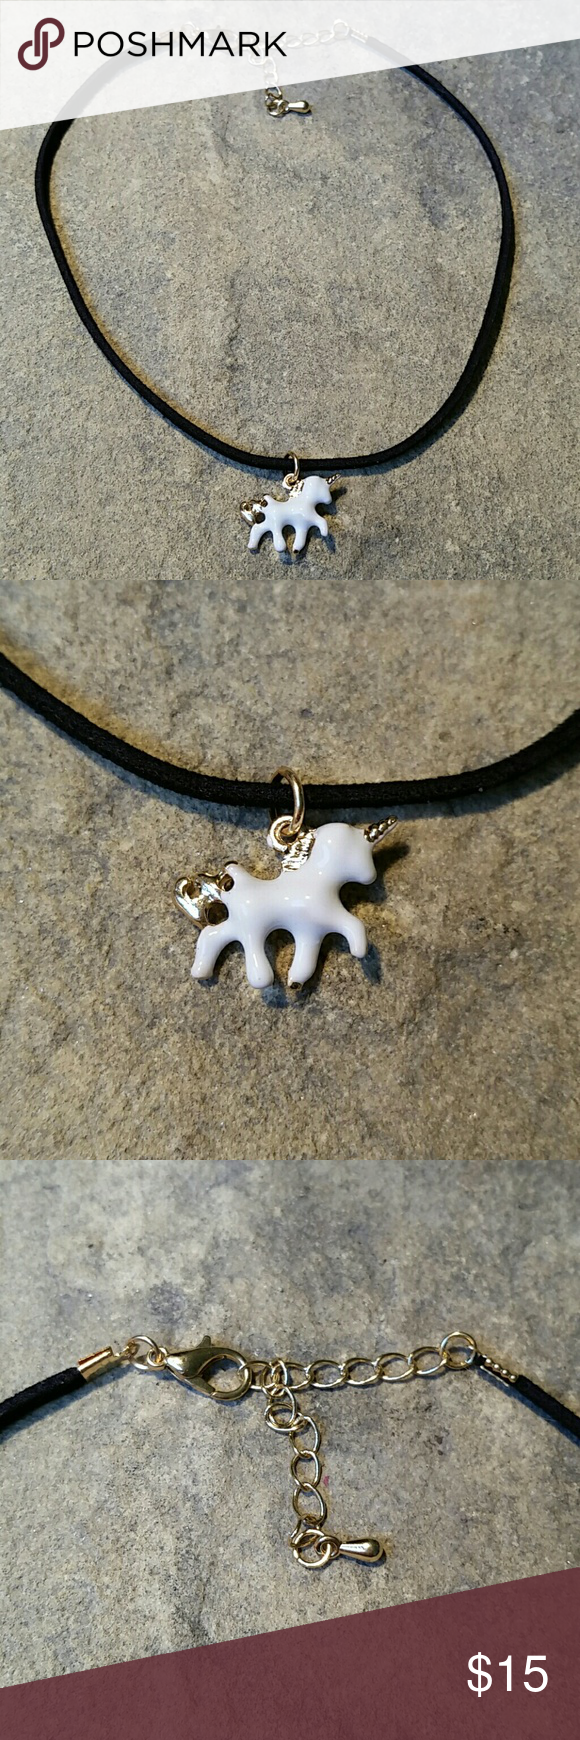 "White & Gold Unicorn Choker Necklace Black Cord Sweet dainty little 3D enameled white & shiny gold metal unicorn short thin choker necklace. The band itself is a super soft high quality faux suede measuring 1/8"" thin, 11.5"" long, with an additional 2.25"" extention chain. The unicorn is 3/4"" wide. A perfect combination of two of this season's hottest trends - unicorns and skinny chokers!  Thank you for visiting my closet, and happy poshing!! :)  SORRY, NO TRADES  BUNDLE & SAVE! Jewelry…"